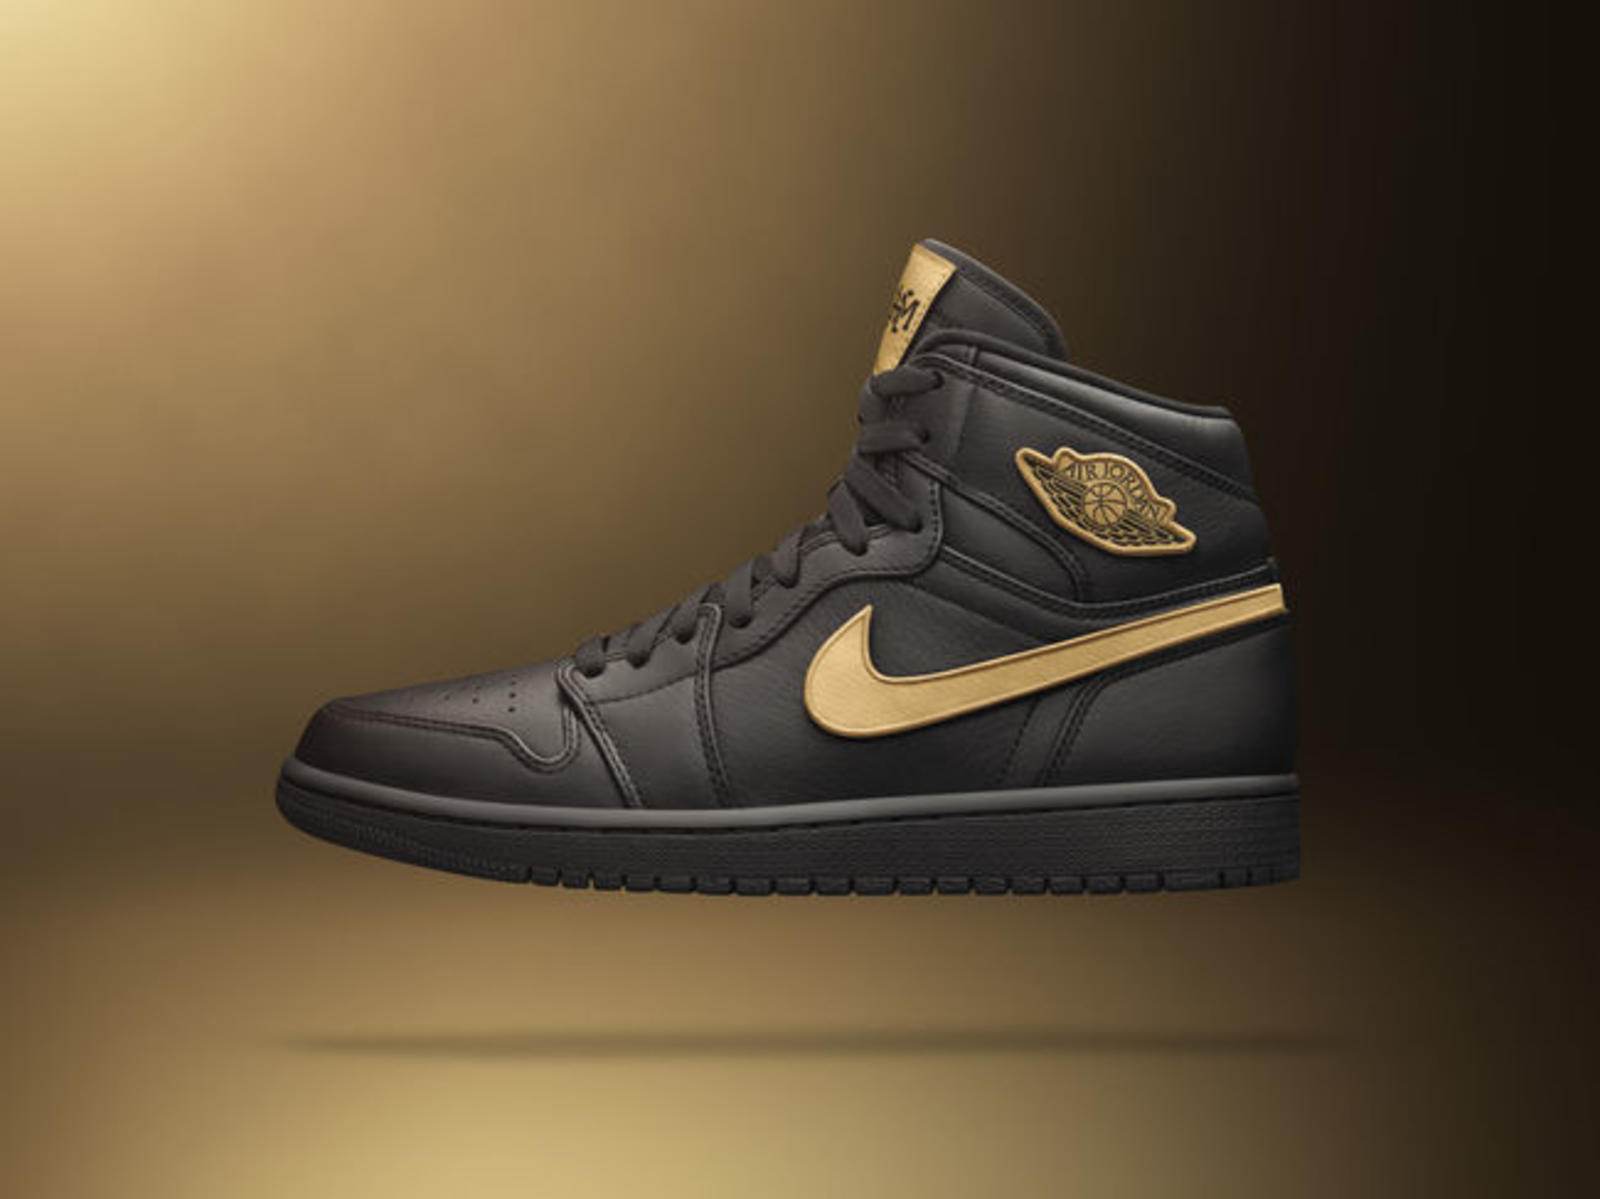 nike and jordan brand unveil the 2017 bhm collection